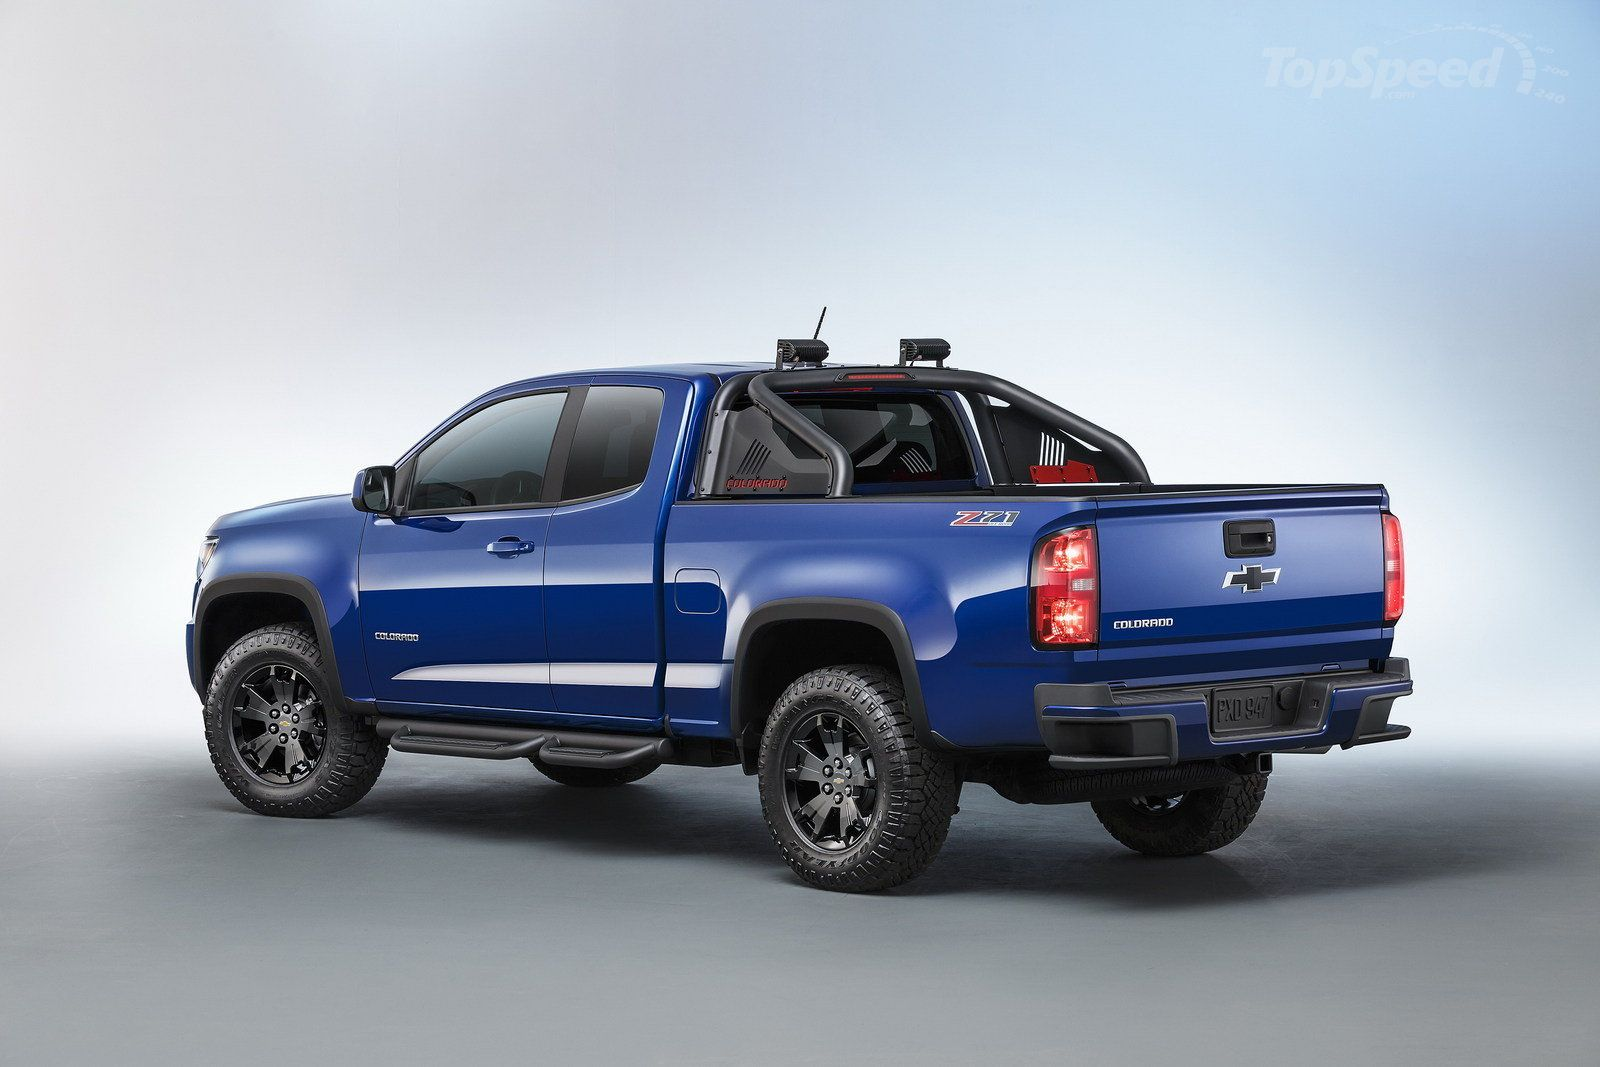 2016 Chevrolet Colorado Z71 Trail Boss Pictures Photos Wallpapers Top Speed Chevy Colorado Chevrolet Colorado Chevrolet Colorado Z71